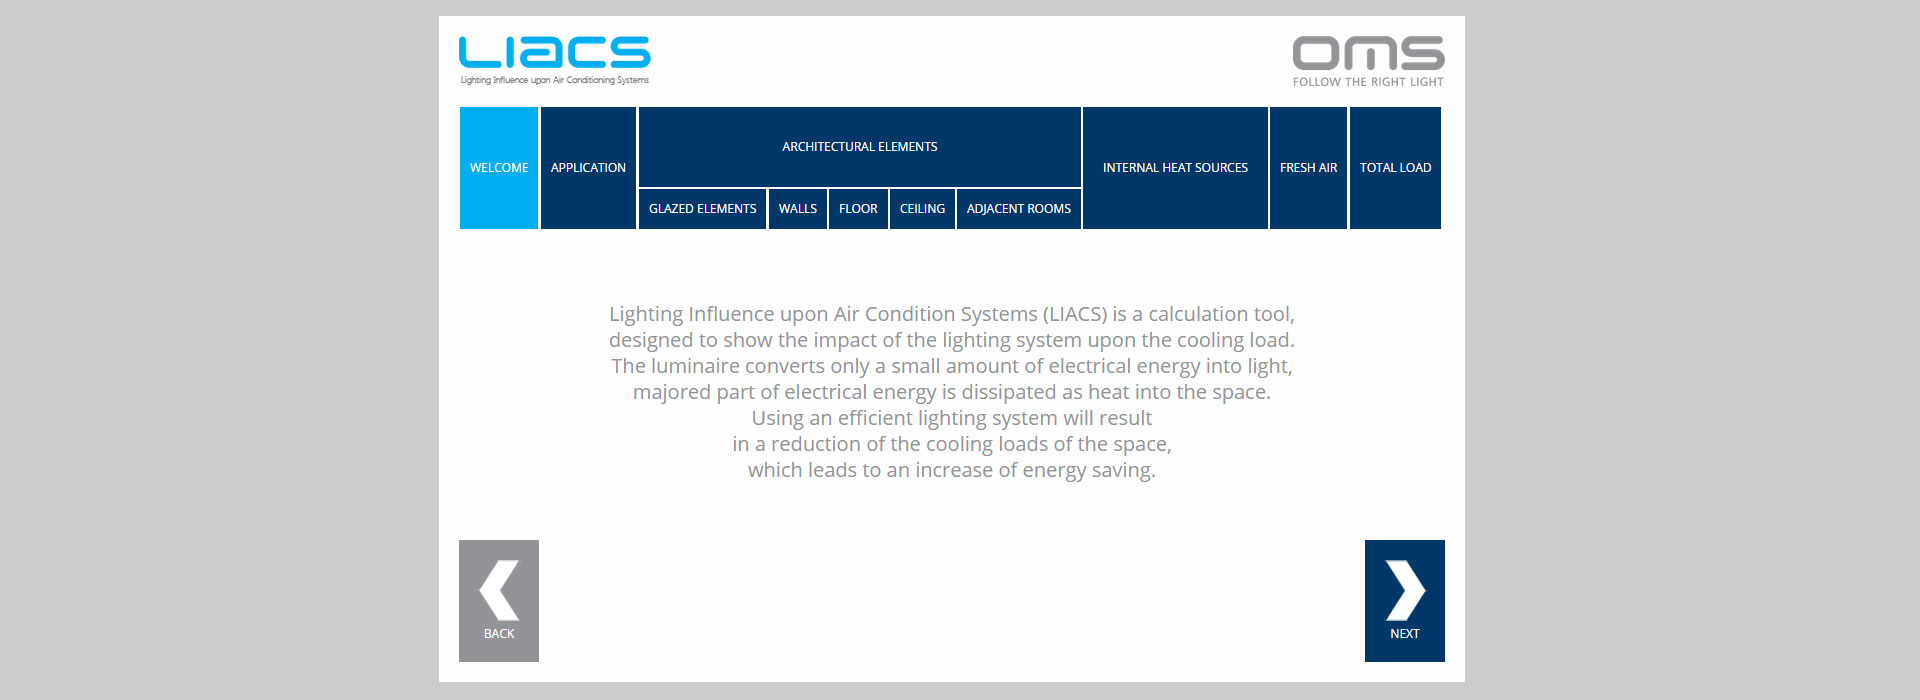 LIACS software - new tool to help increase energy savings from lighting